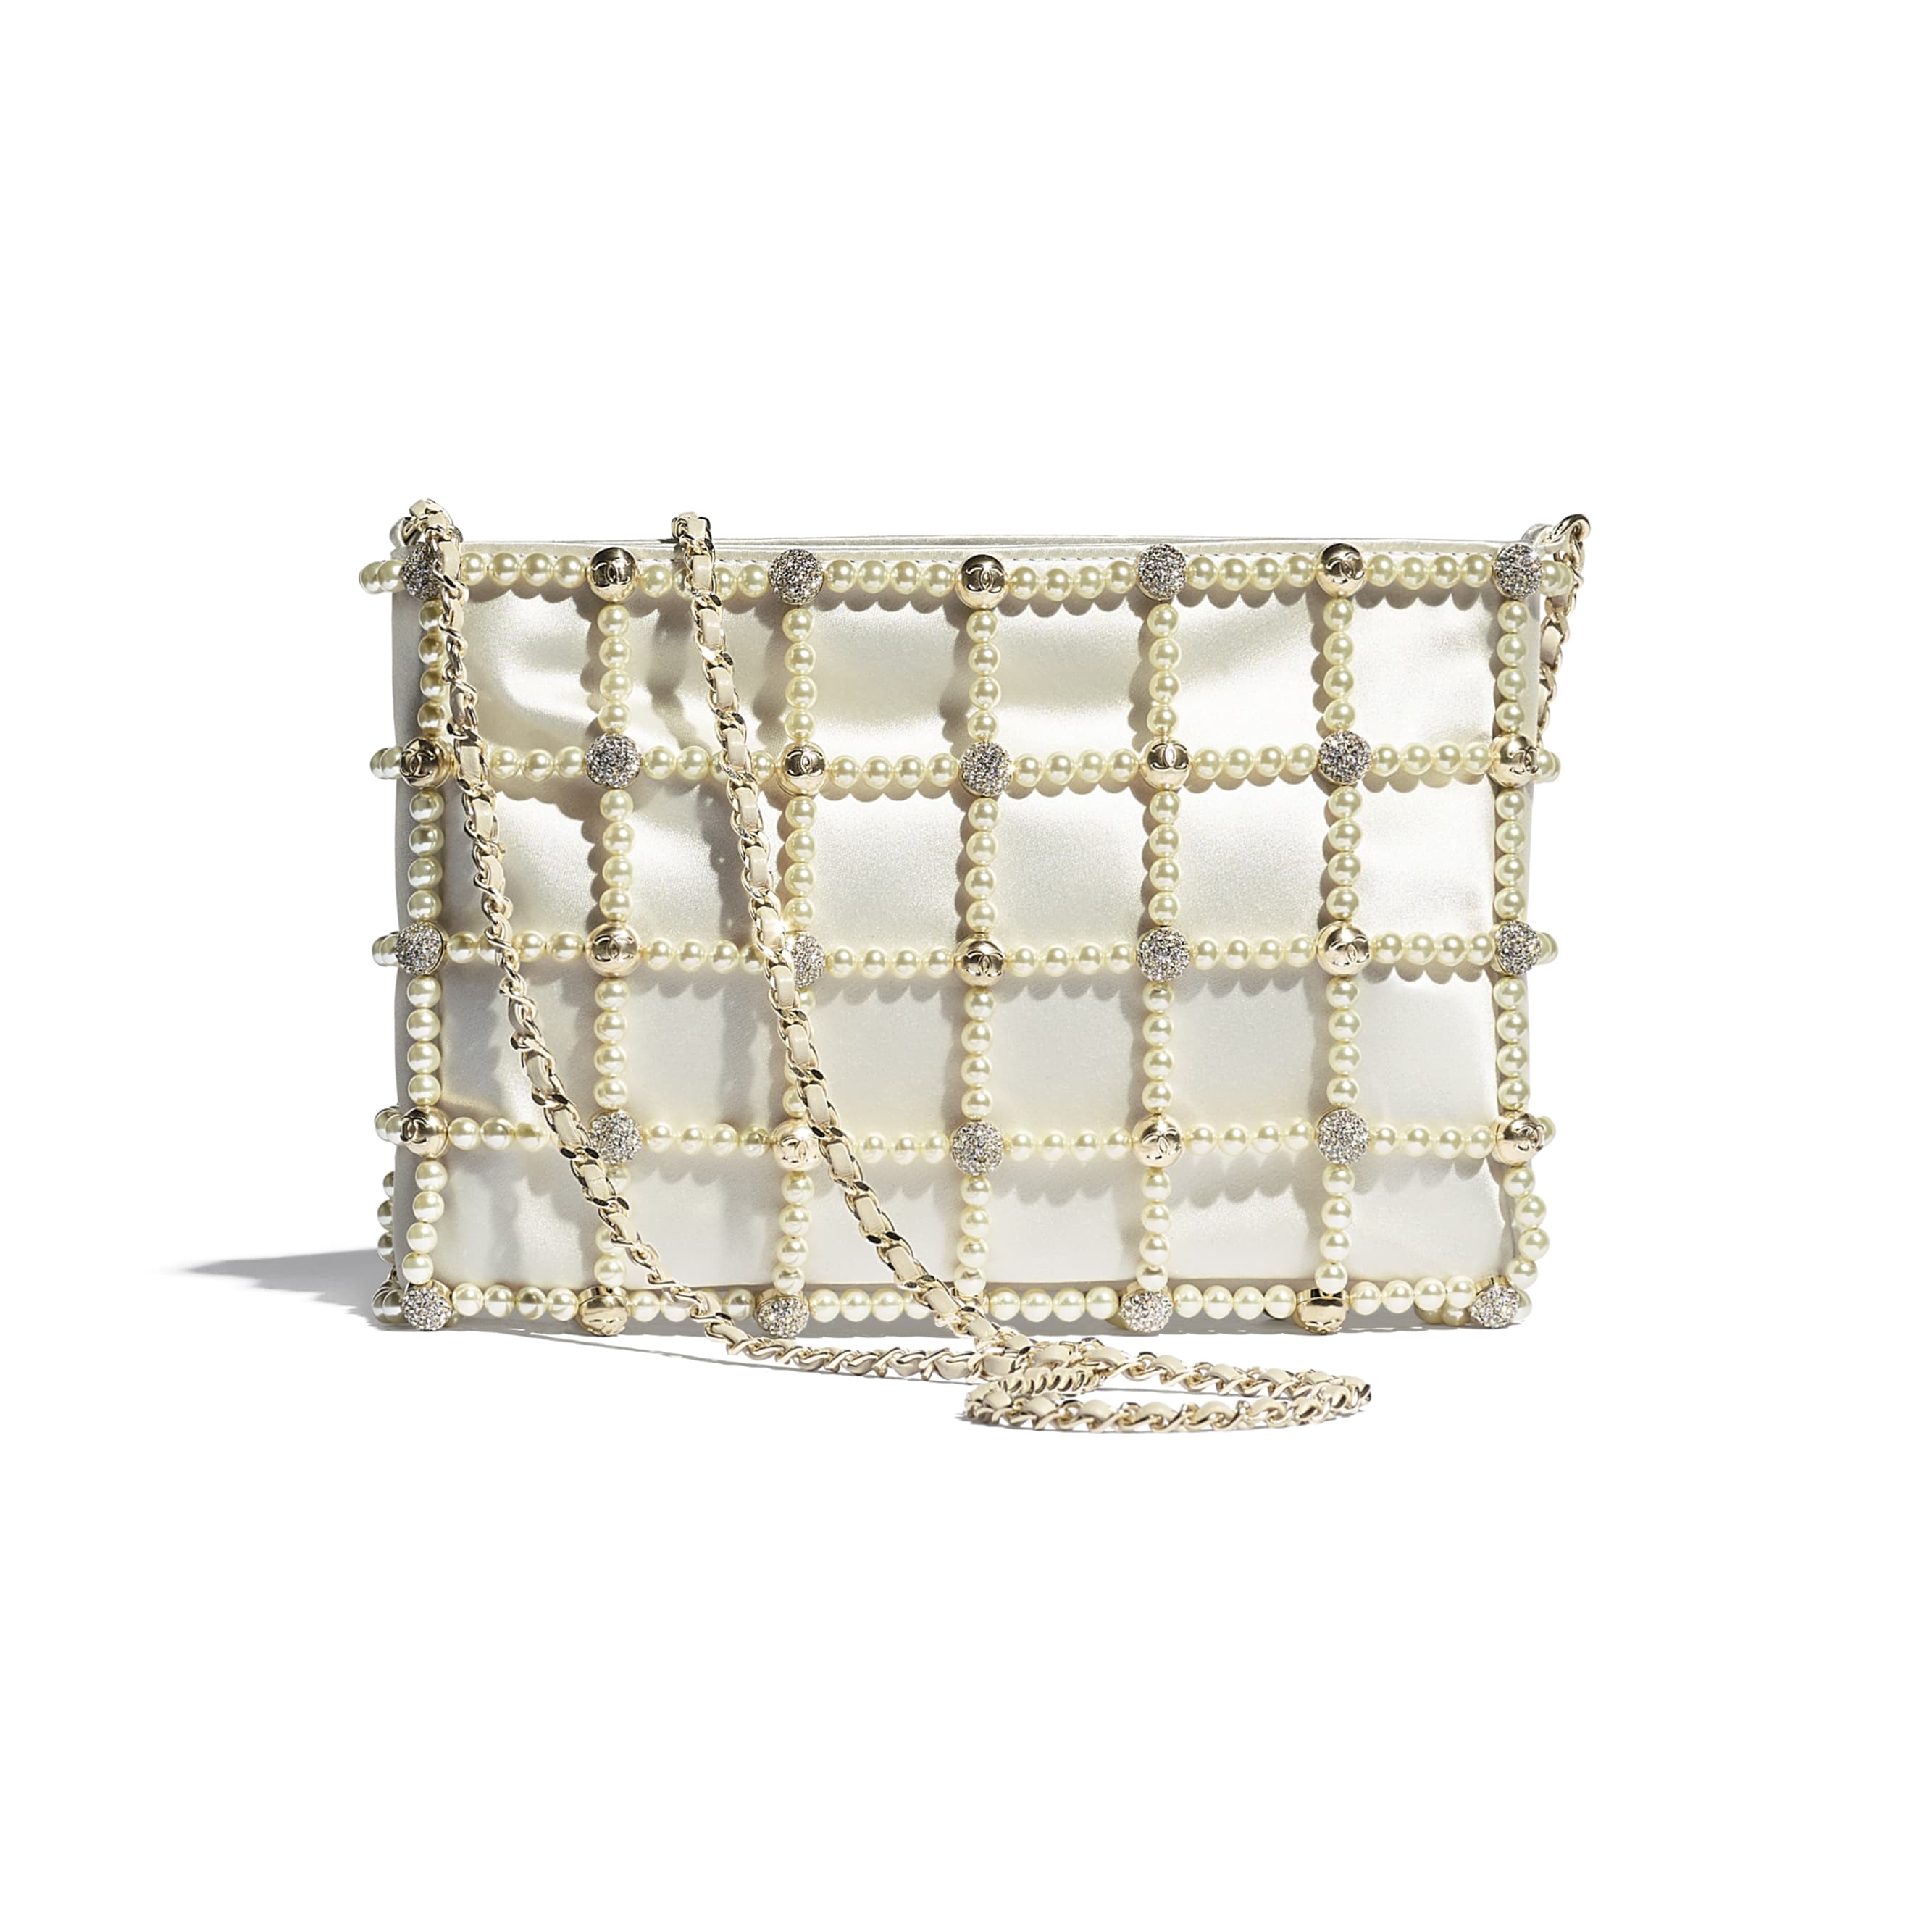 Clutch - White - Satin, Glass Pearls, Strass & Gold-Tone Metal - CHANEL - Alternative view - see standard sized version